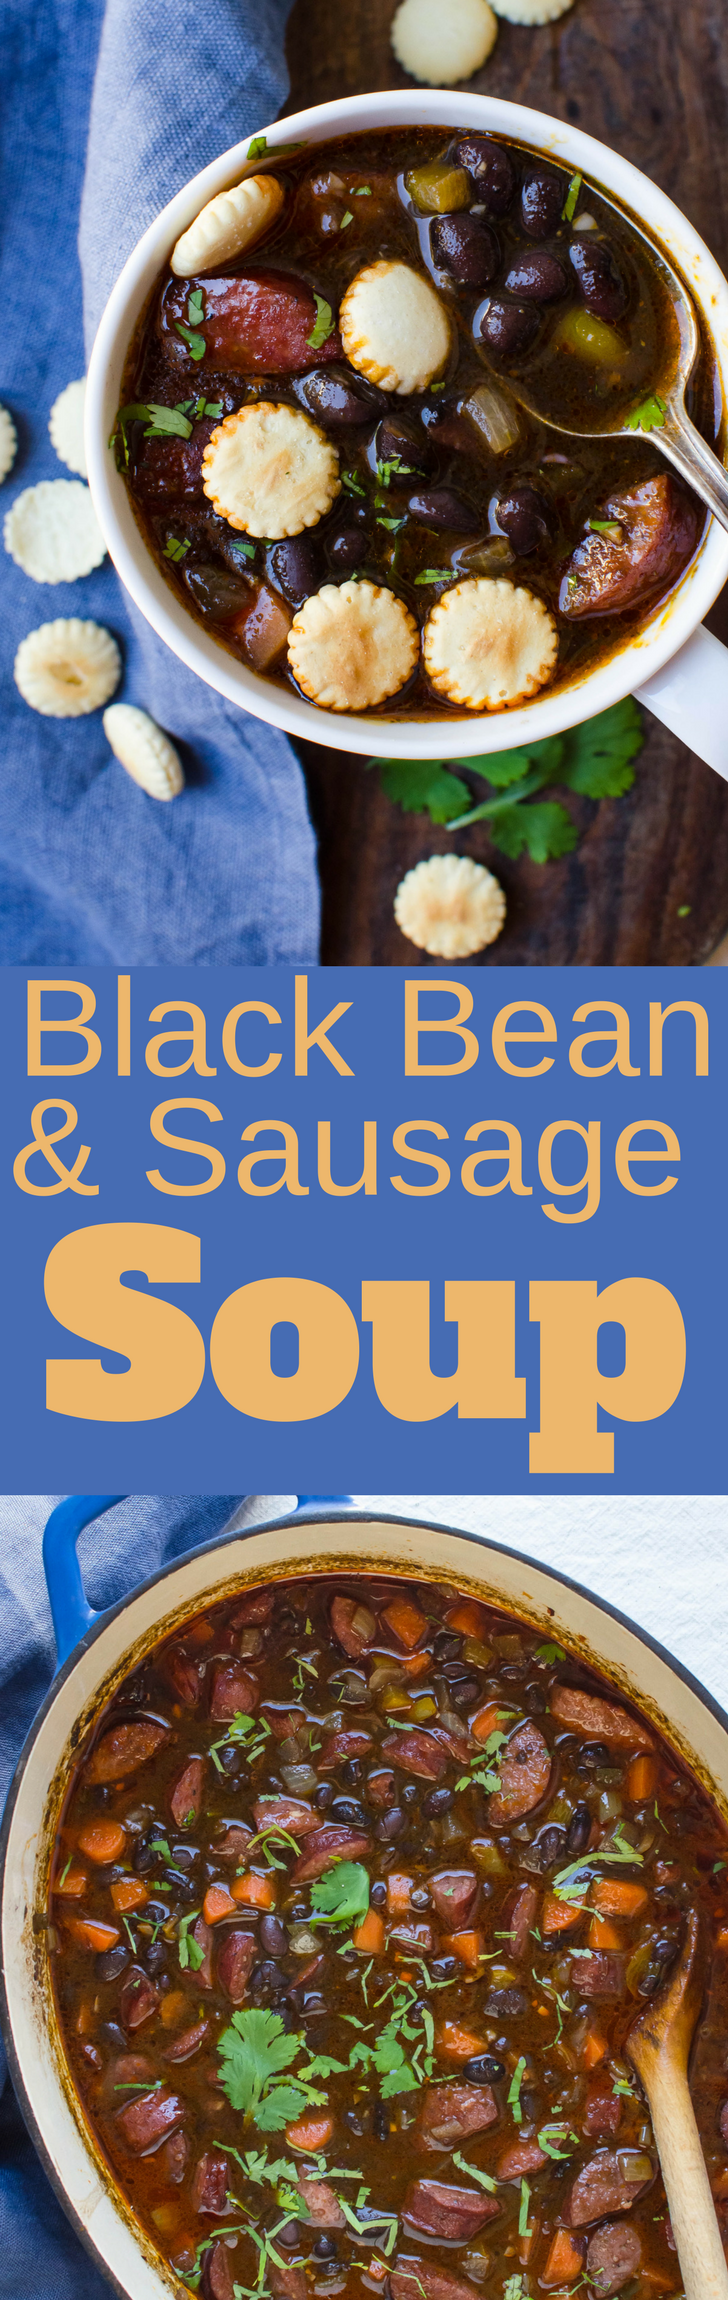 Need an easy black bean soup recipe that feeds a crowd? This one with kielbasa sausage, cumin and chile paste is the hearty and delicious! #blackbeans #blackbeansoup #kielbasa #sausage #sausagebeansoup #chilepaste #chiles #jalapenos #soup #coldweathersoups #driedbeans #beans